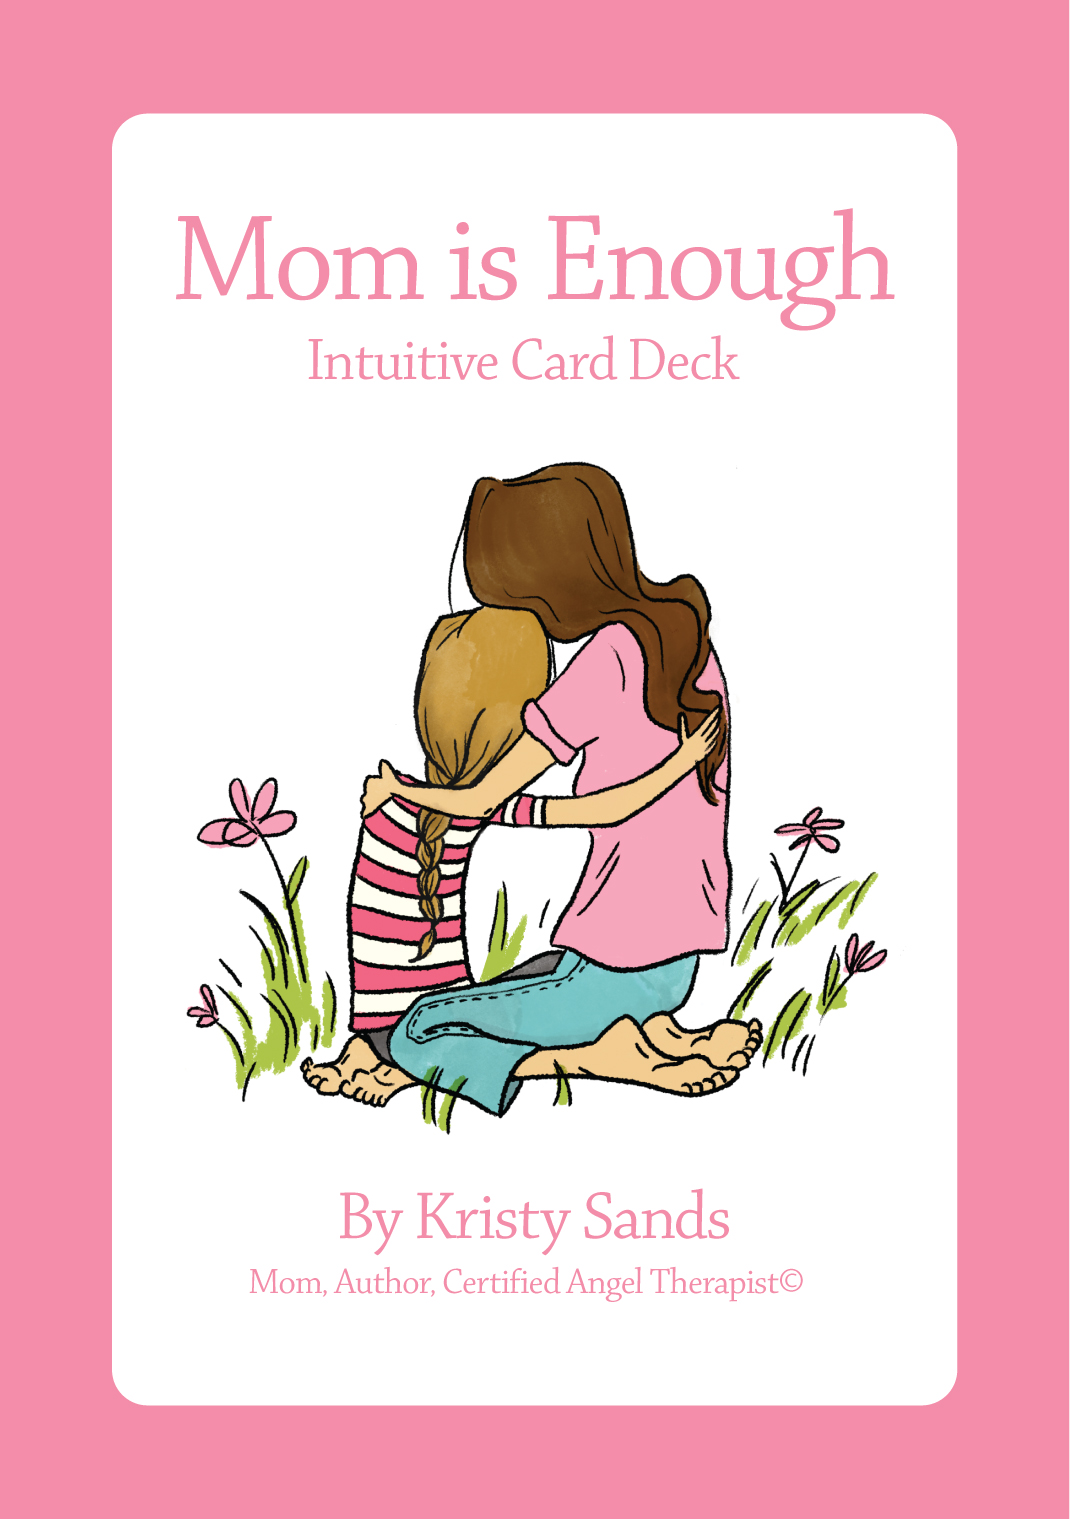 mom-is-enough-card-pack-front